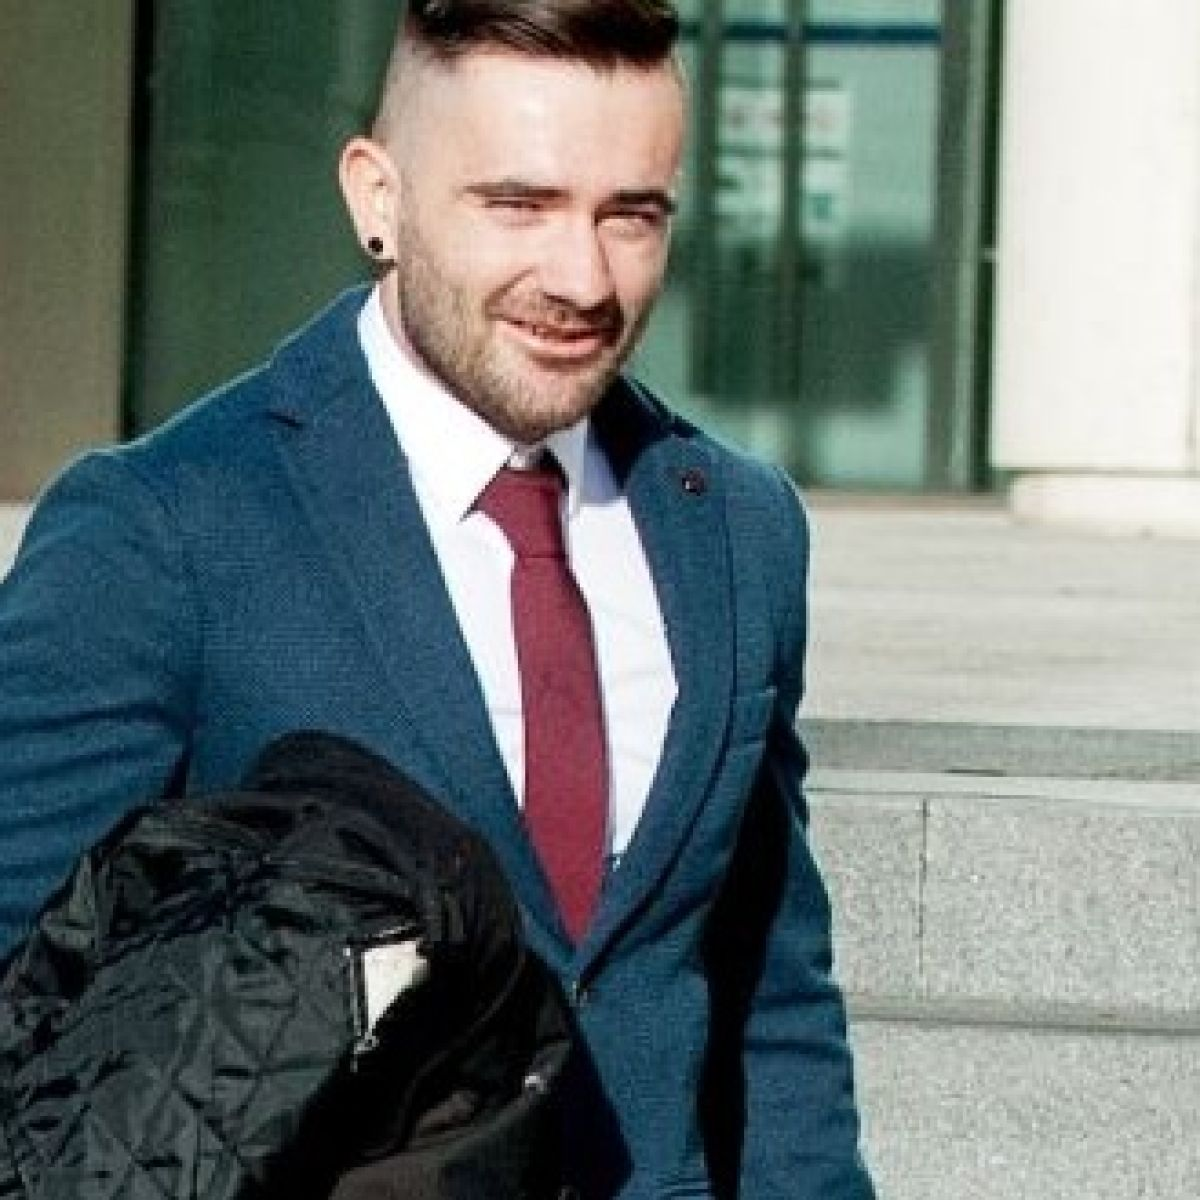 Man acquitted of attempted murder last week also has assault